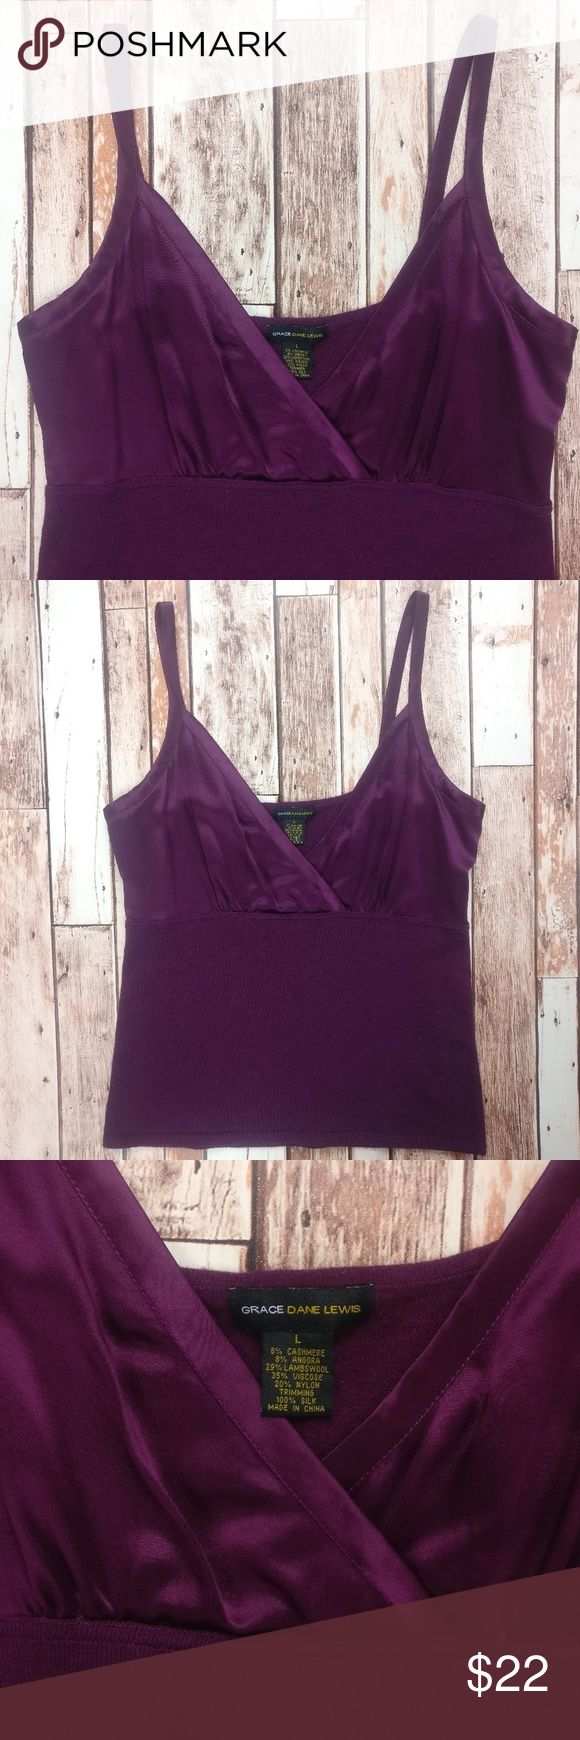 """Grace Dane Lewis Cashmere & Silk Blend Tank Top Grace Dane Lewis  Beautiful purple tank tank. Gently used, good condition.  Size women's L. 8% cashmere/ 8% angora/ 29% lambswool/ 35% viscose/ 20% nylon. Trimming 100% silk.  Approx. measurements lying flat & unstretched: Chest across (armpit to armpit): 17.5"""" Length (top of shoulder to bottom): 24.5"""" Bundle for private offer.  Bundle 2+ items for at least 20% off! Grace Dane Lewis Tops Tank Tops"""